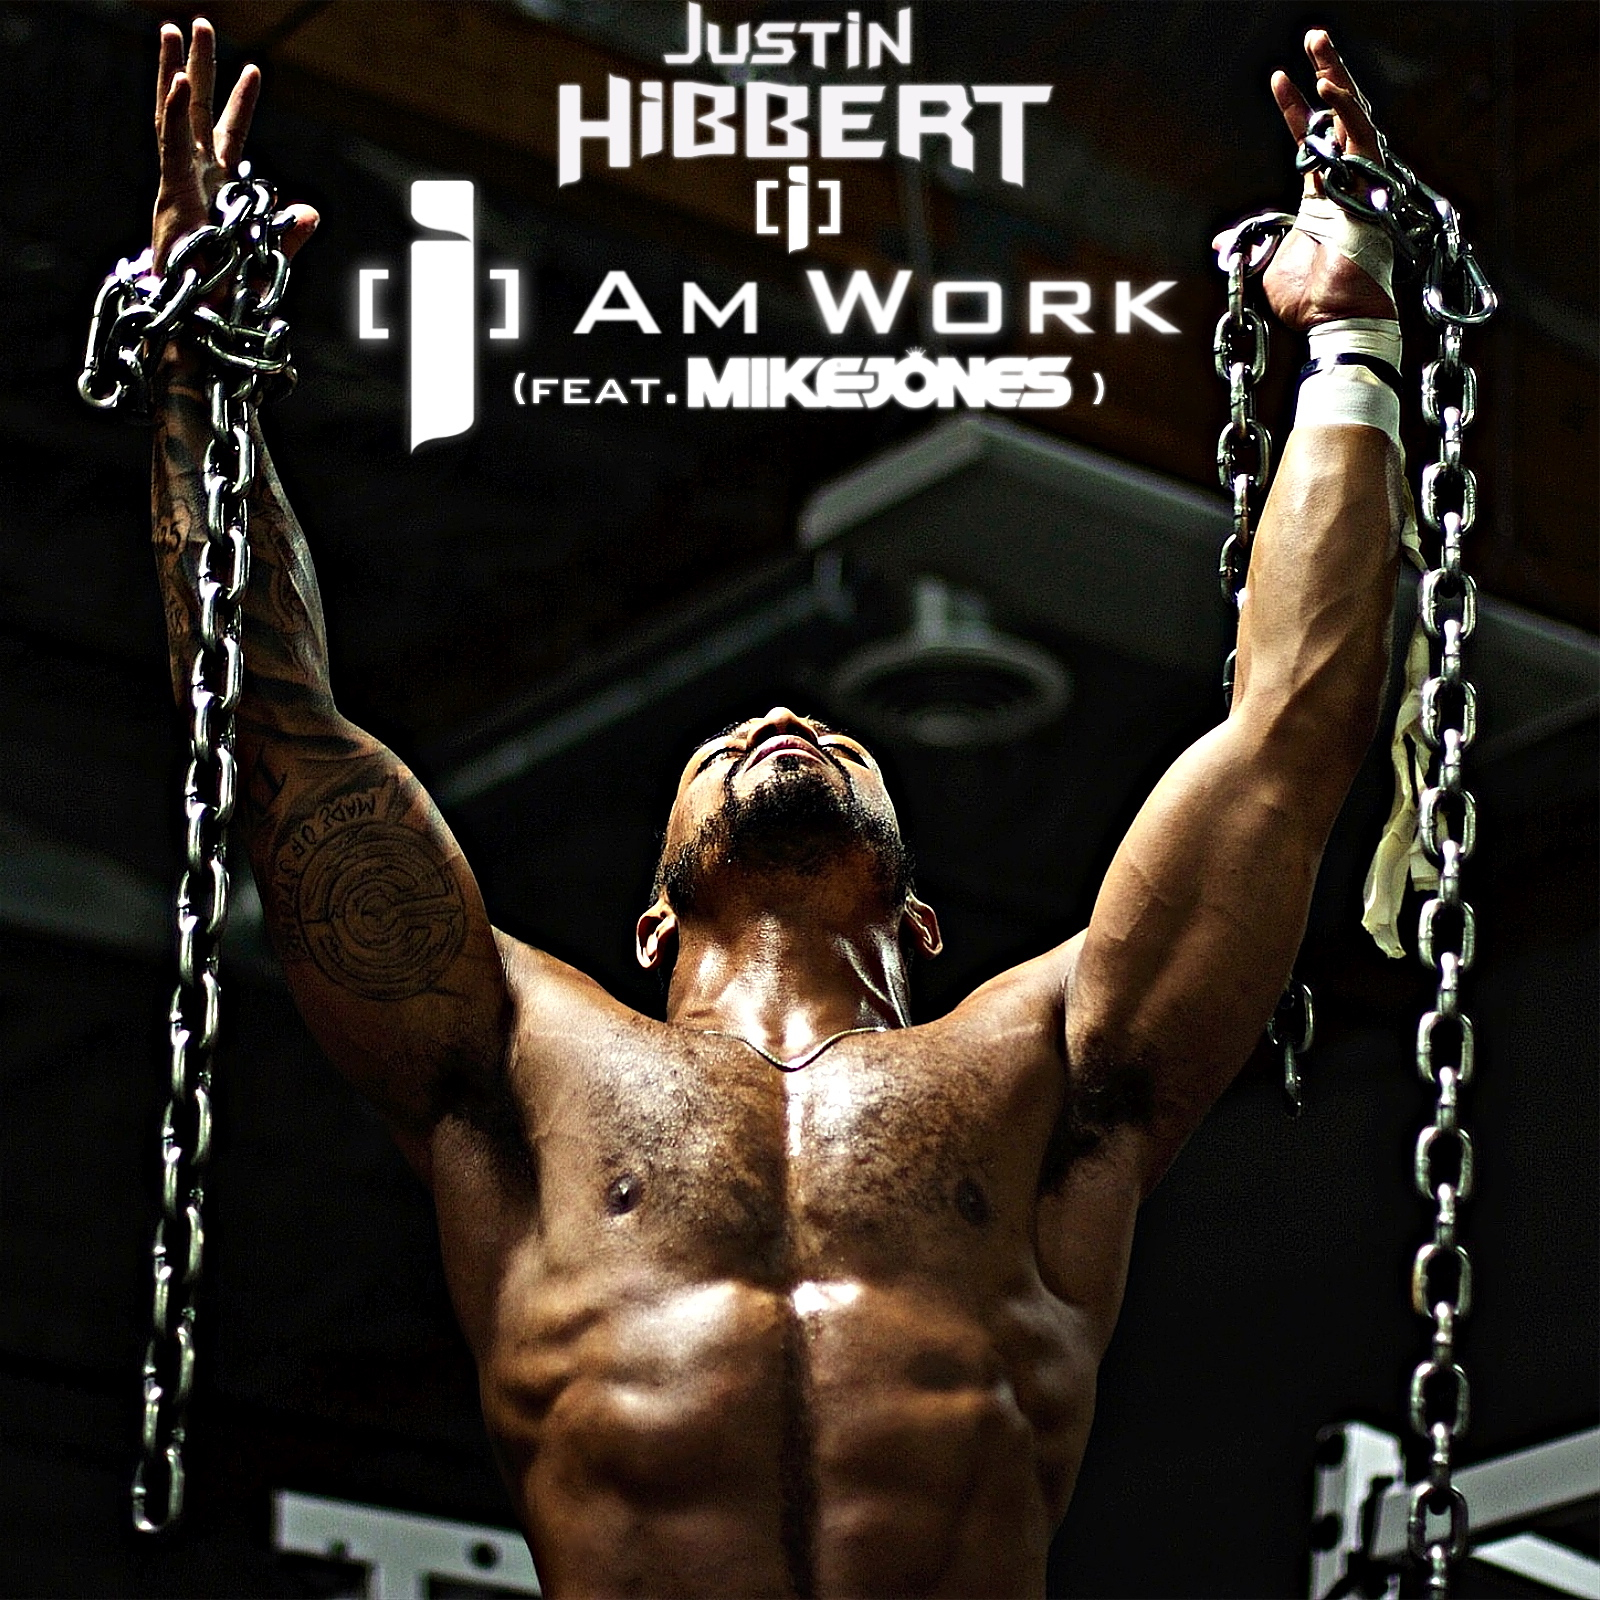 Justin Hibbert [i] Feat. Mike Jones – [i] Am Work